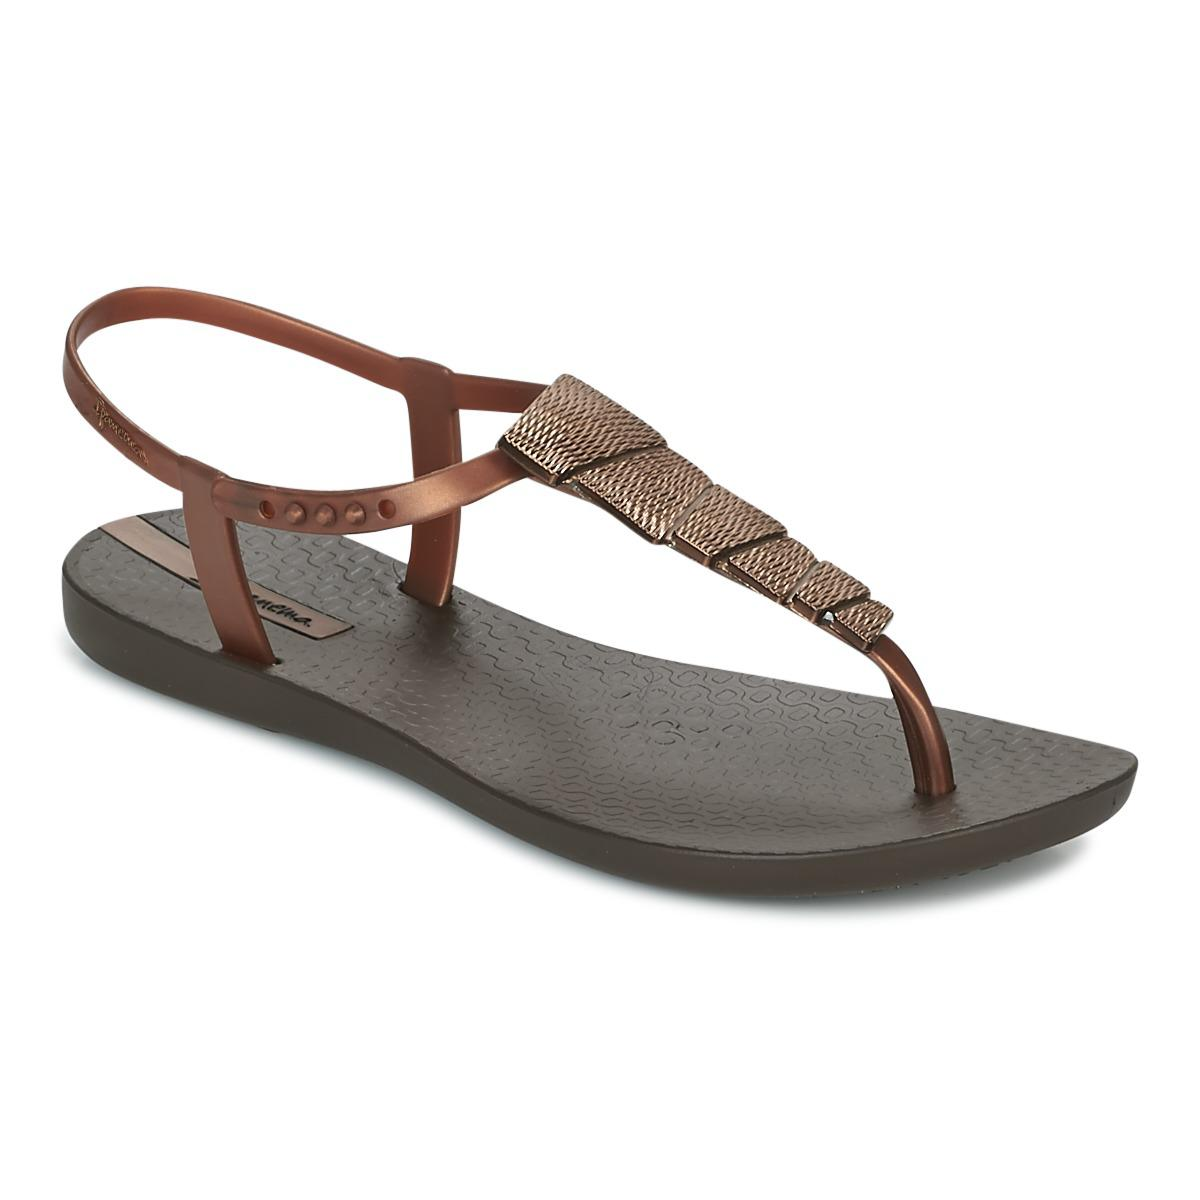 Ipanema. Charm V Sand Women's Sandals In Brown